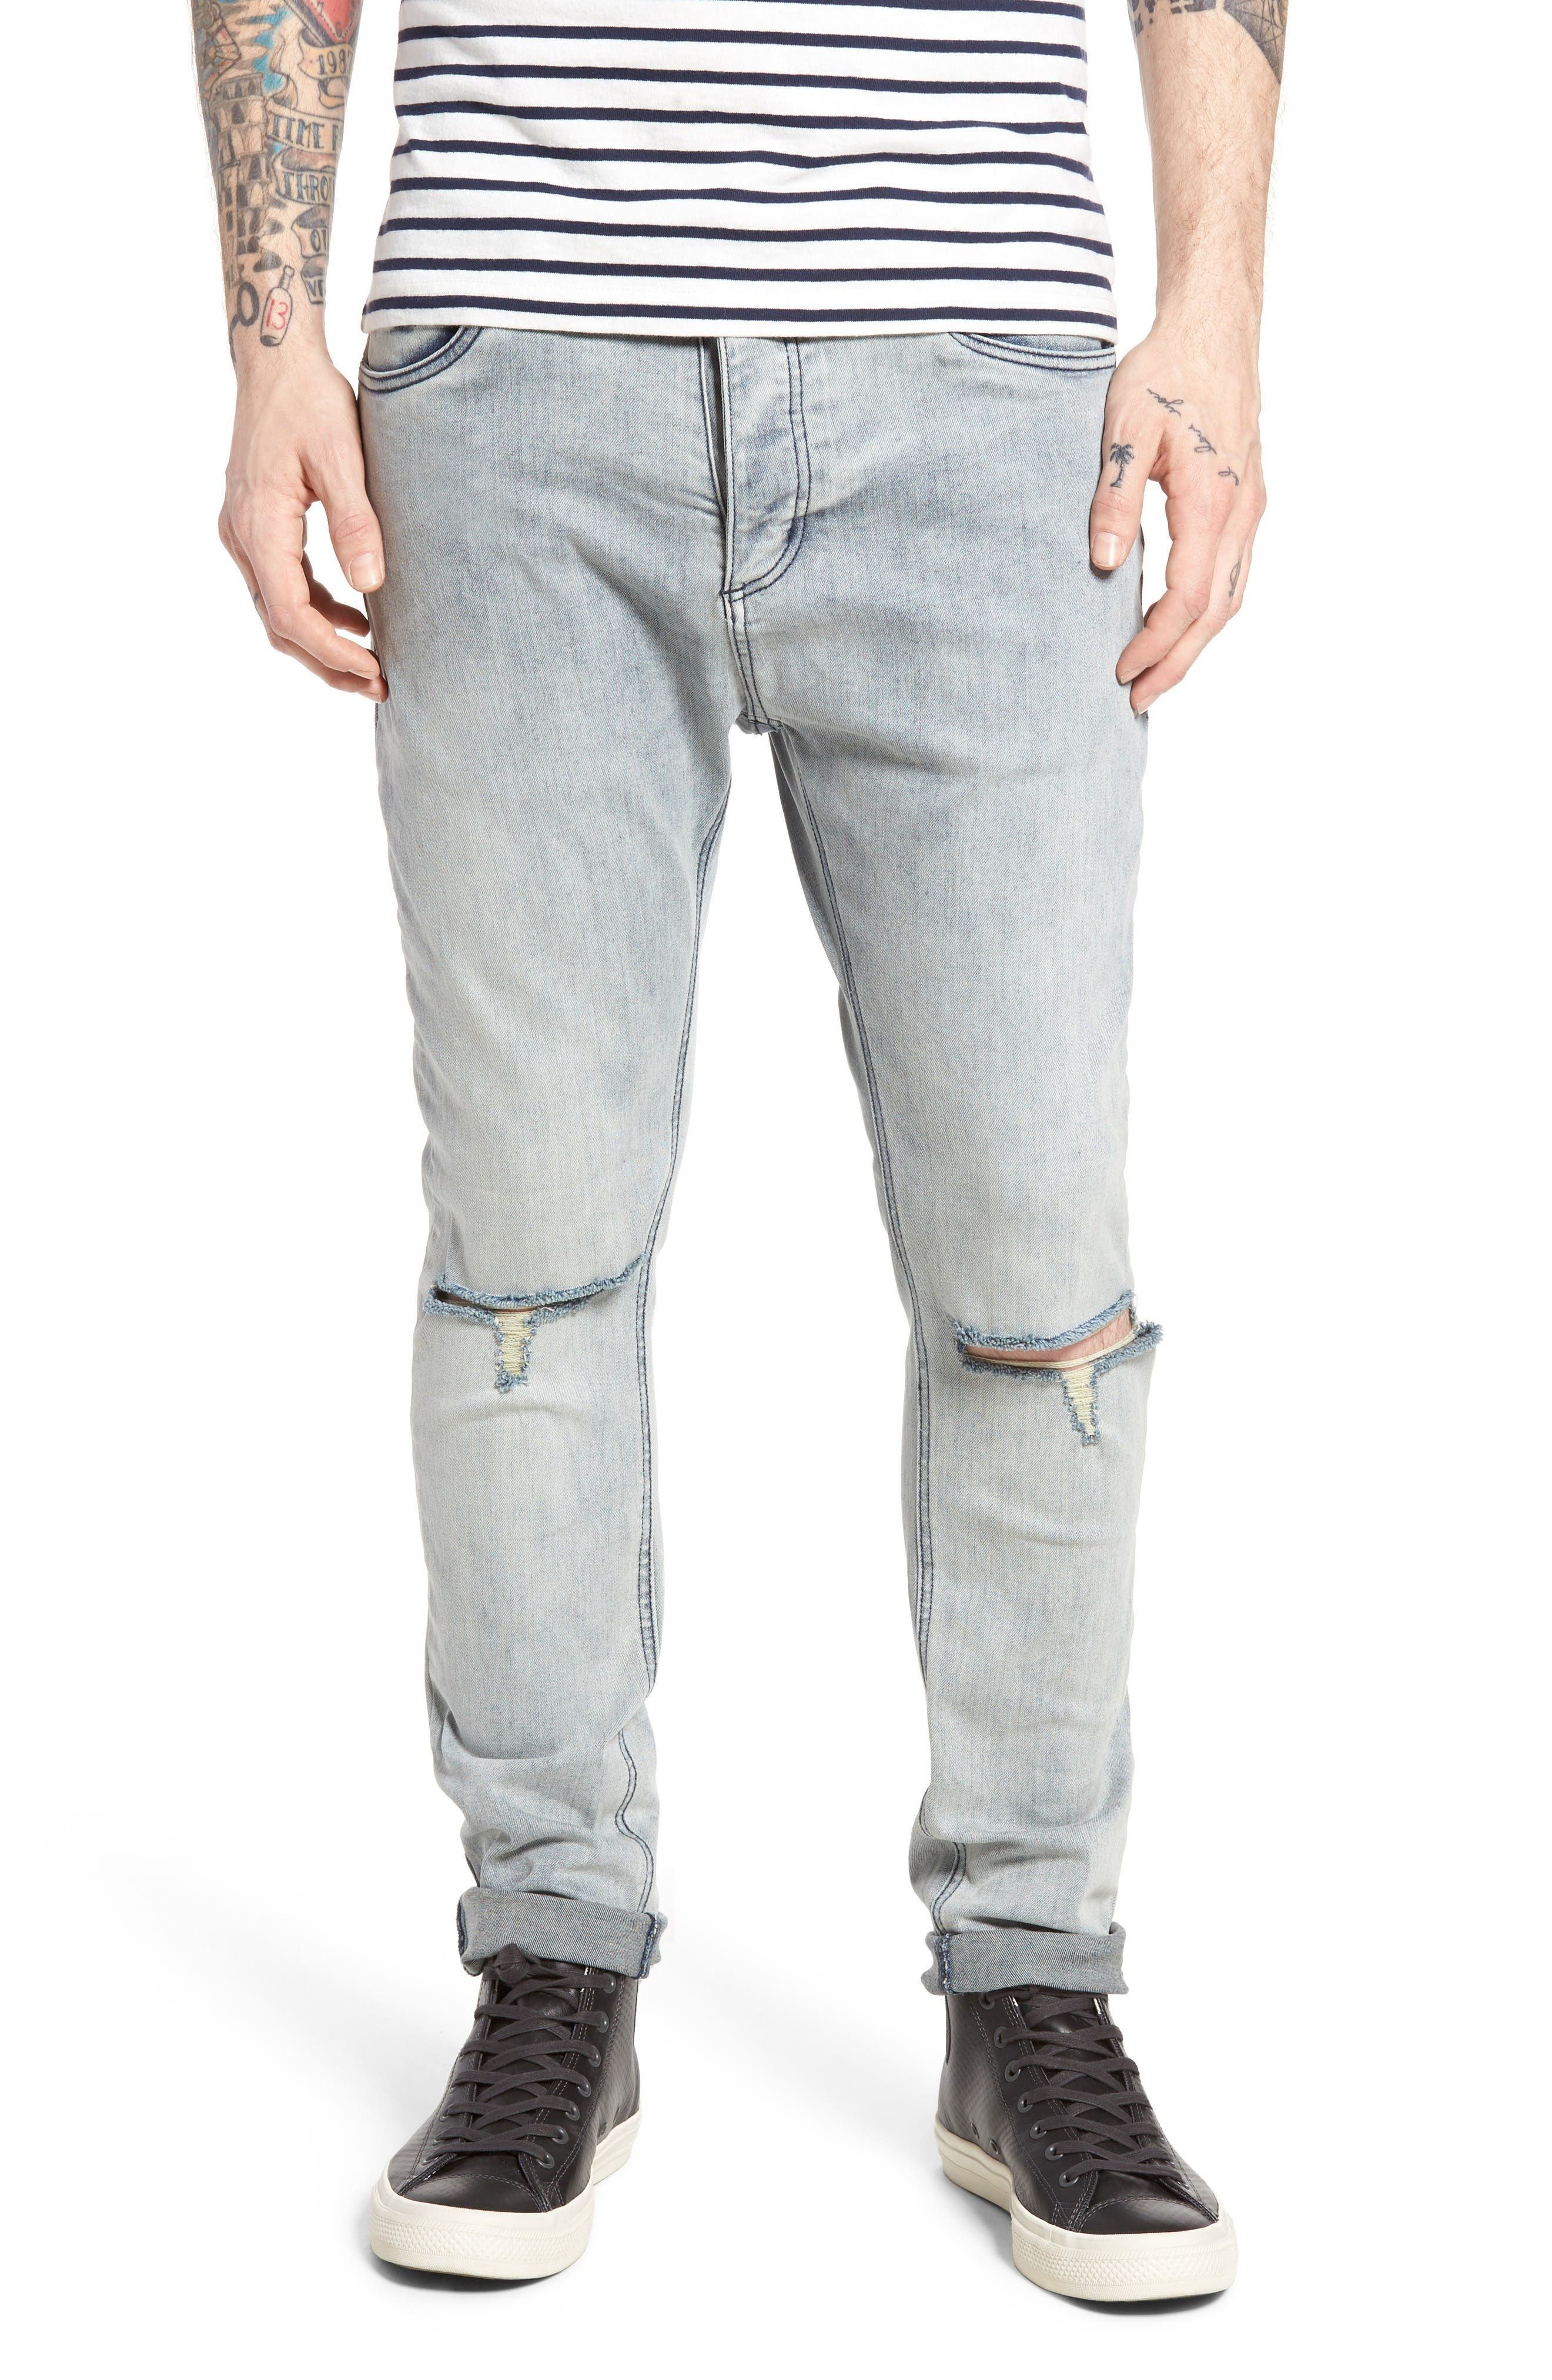 ZANEROBE Joe Blow Destroyed Denim Jeans (Smooth Blue)